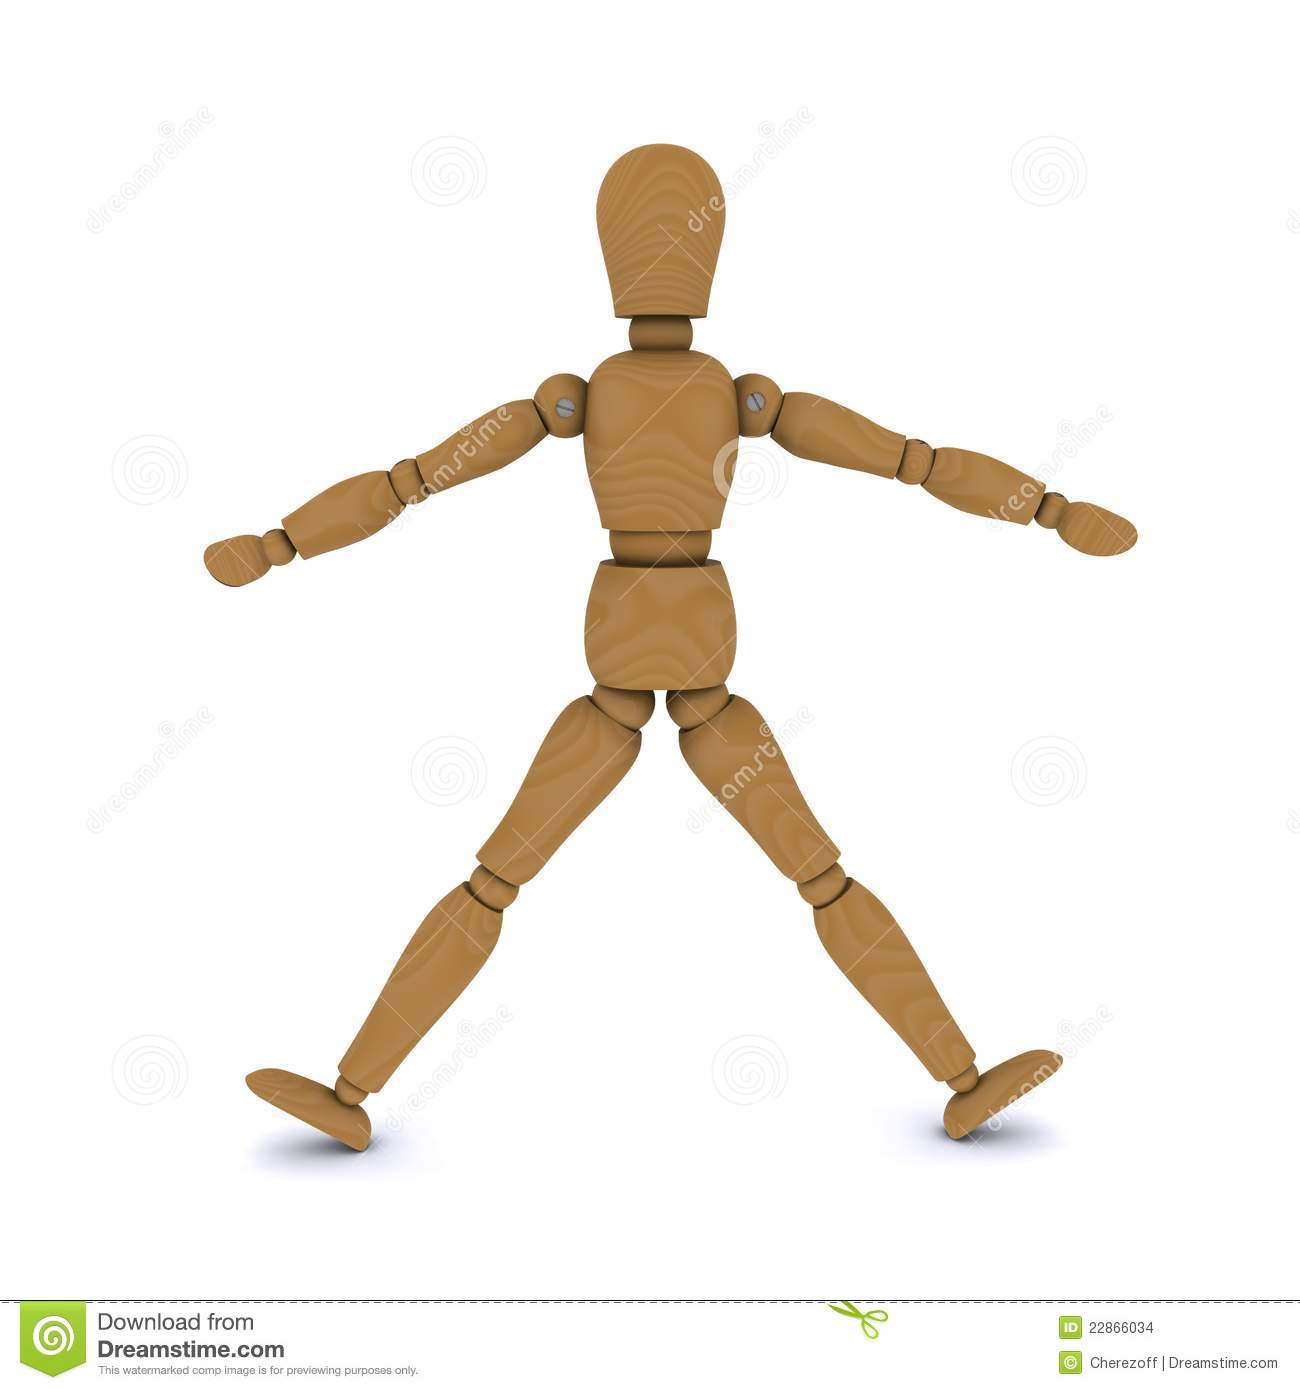 Stock Images Wooden Doll Stands Arms Legs To Side Image22866034 on Wood Doll Furniture Plans